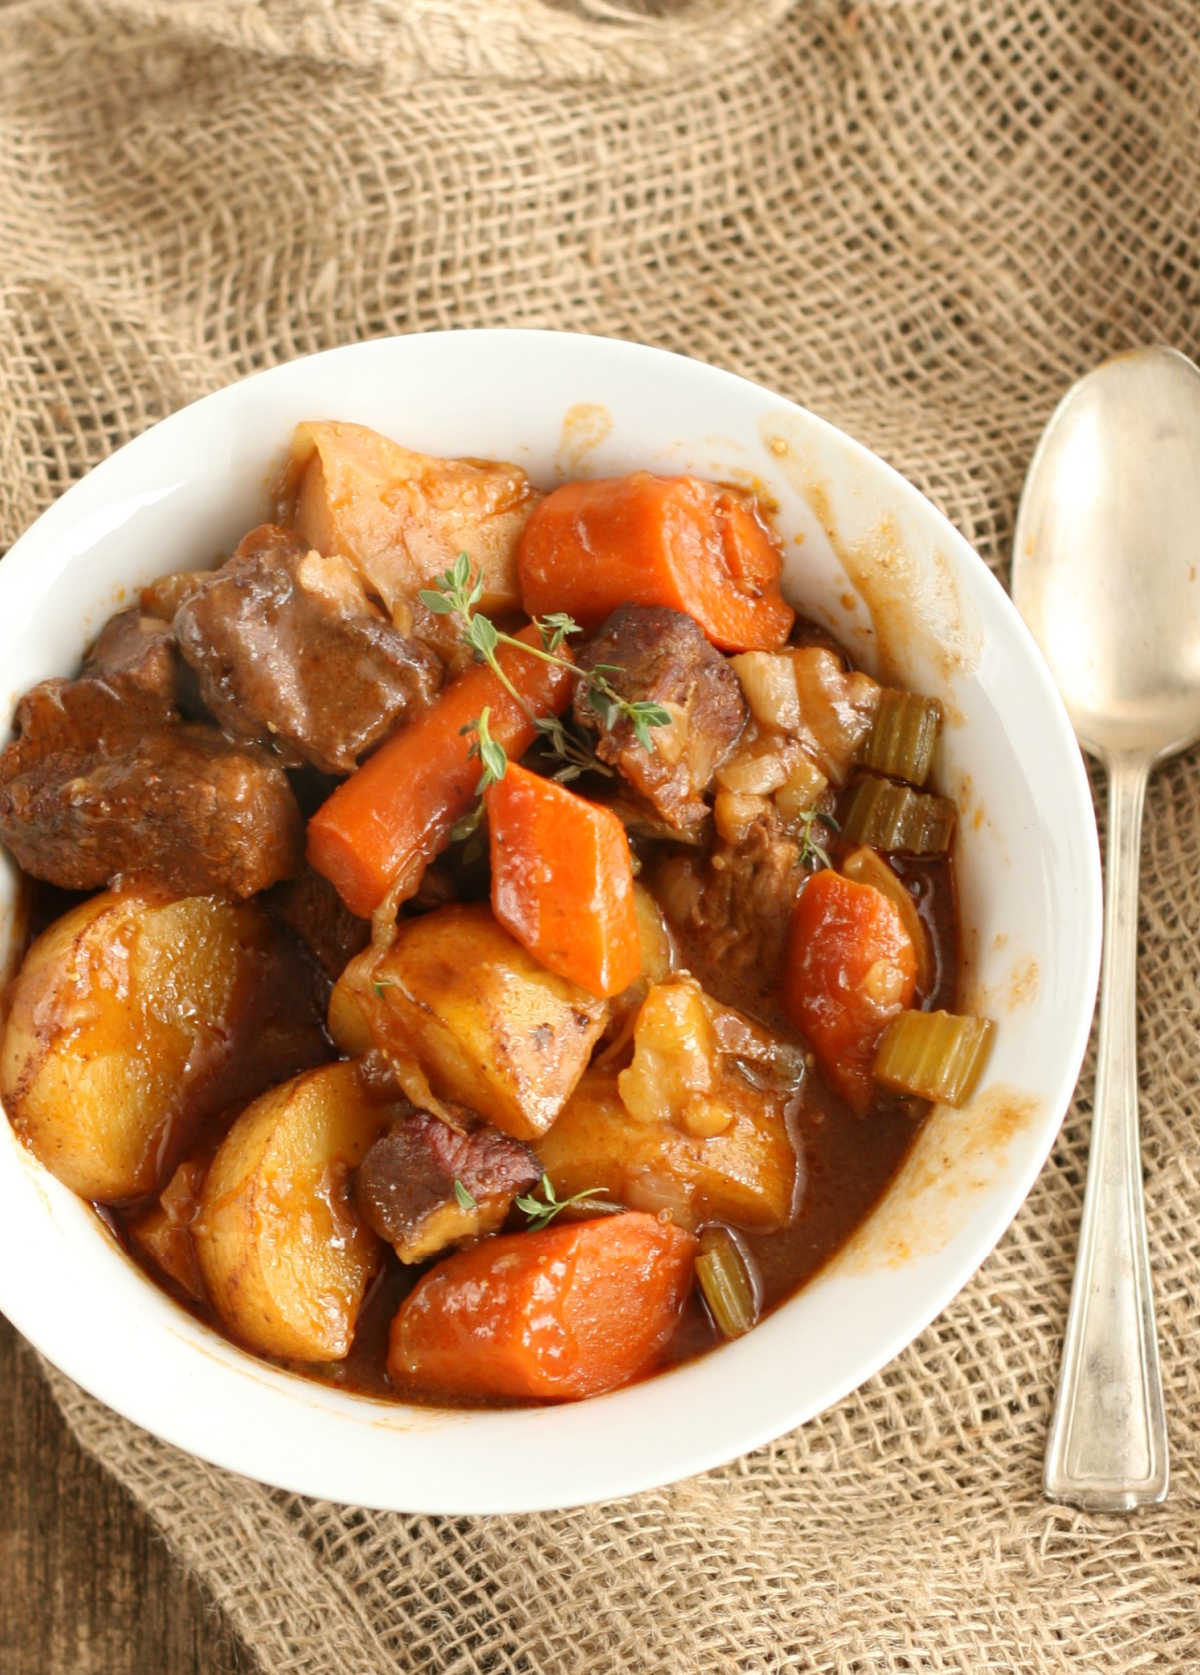 Brisket stew with carrots, stew beef, potatoes, celery, fresh thyme in small white bowl on burlap.